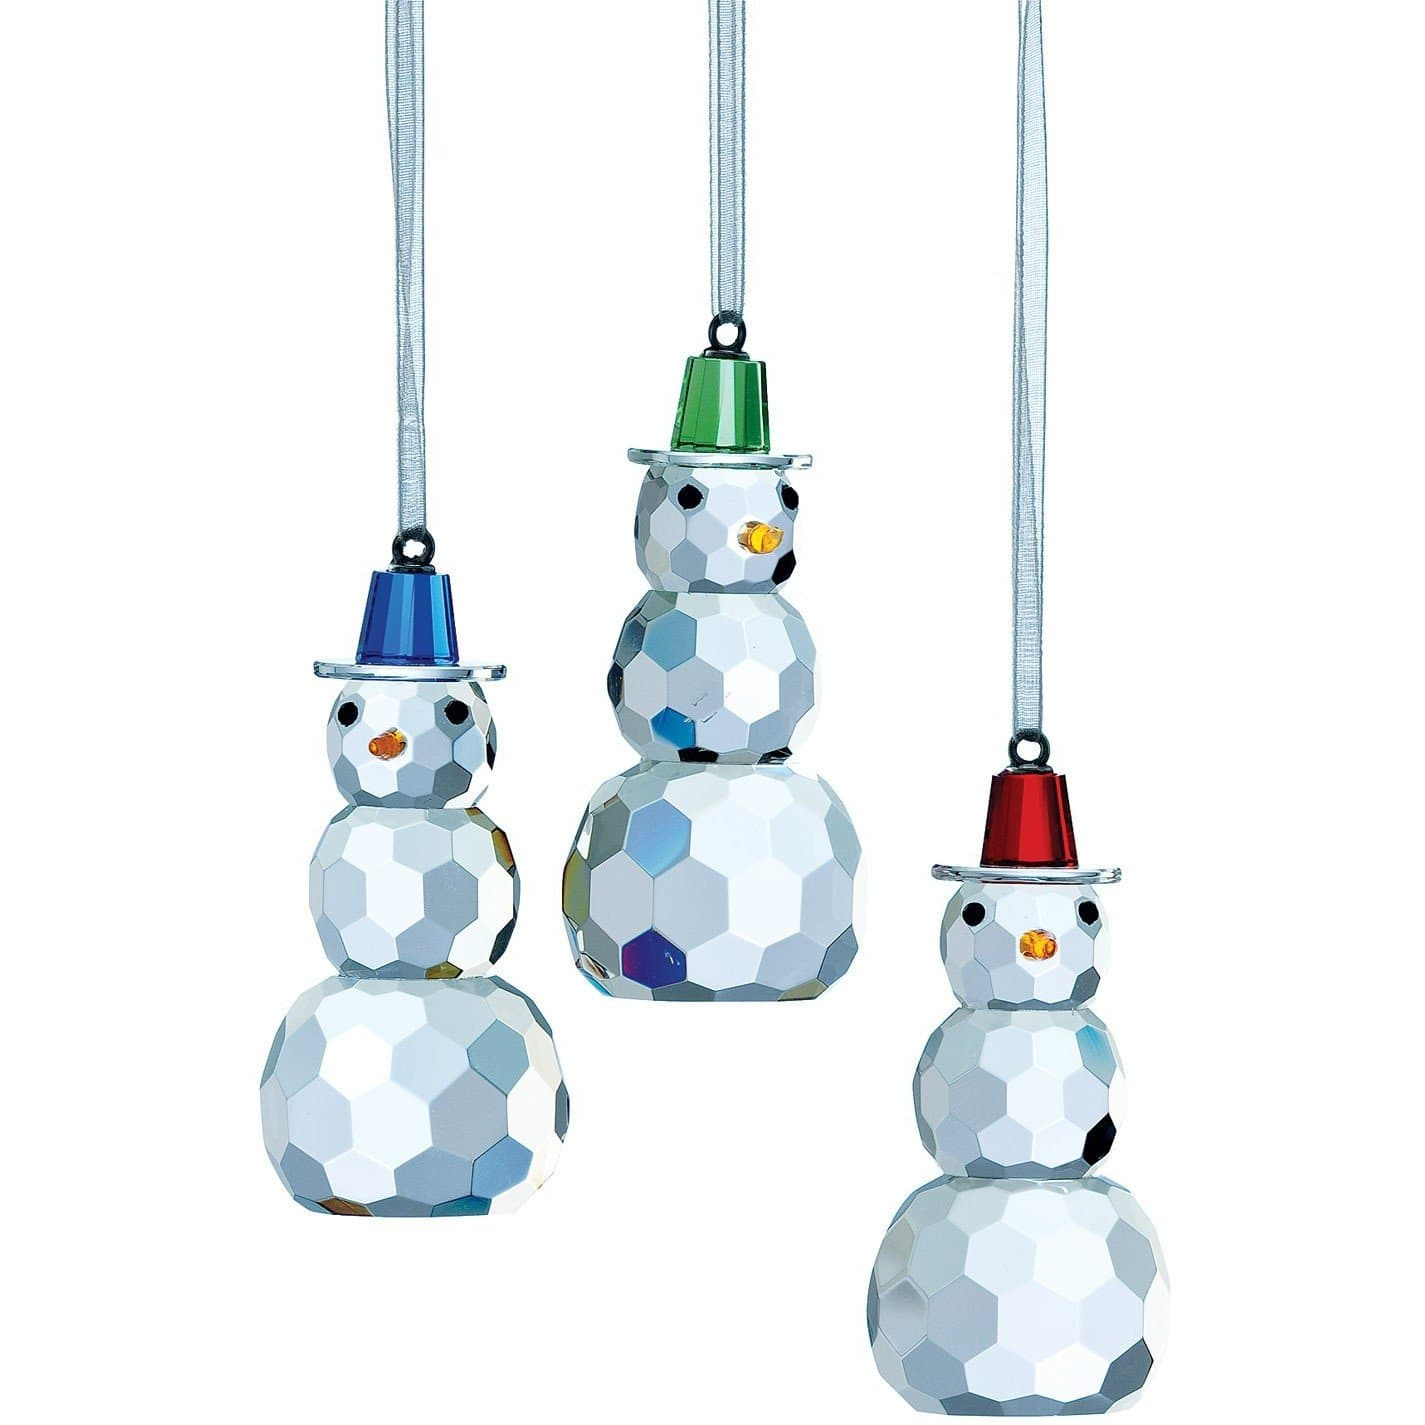 Magical Snowman Hanging Ornaments GMG09